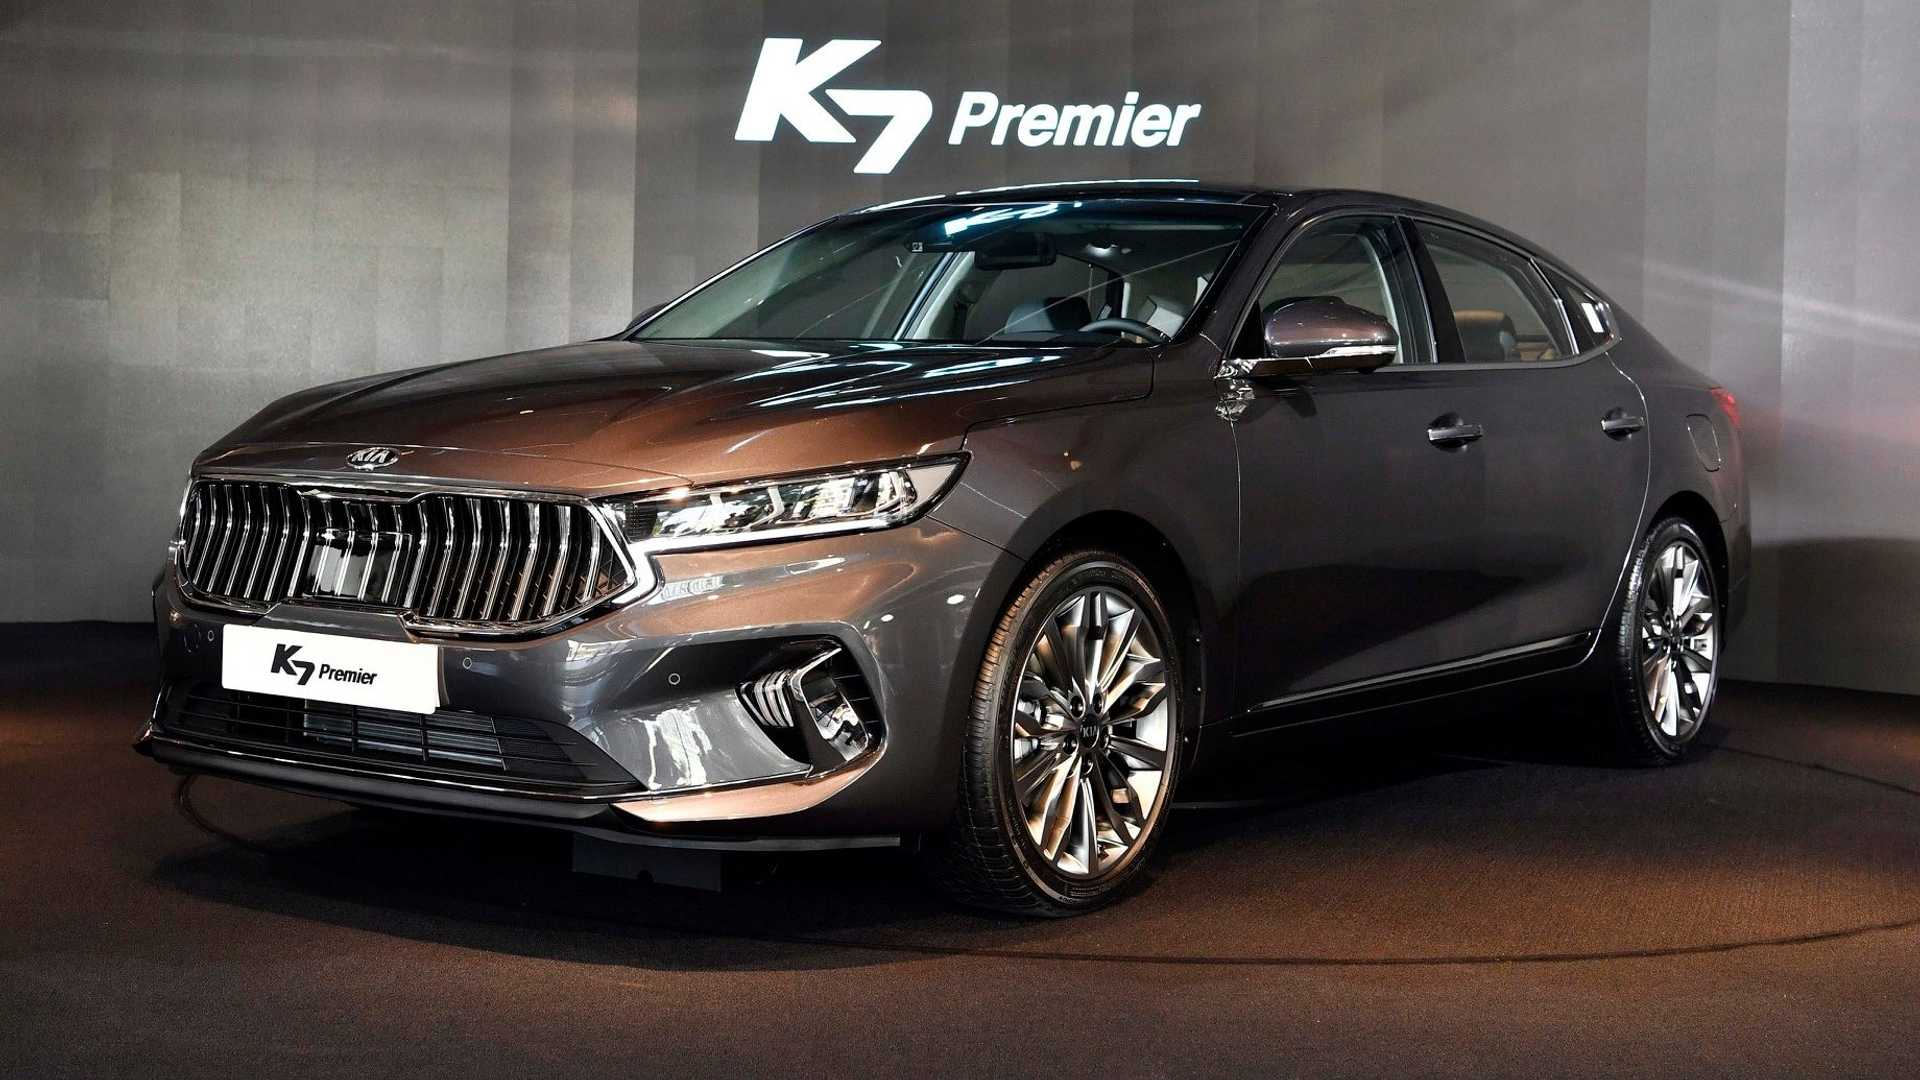 The second generation of Kia's largest and most well-appointed FWD sedan/saloon, called the K7 in some markets and Cadenza in some others, has been around for three long years